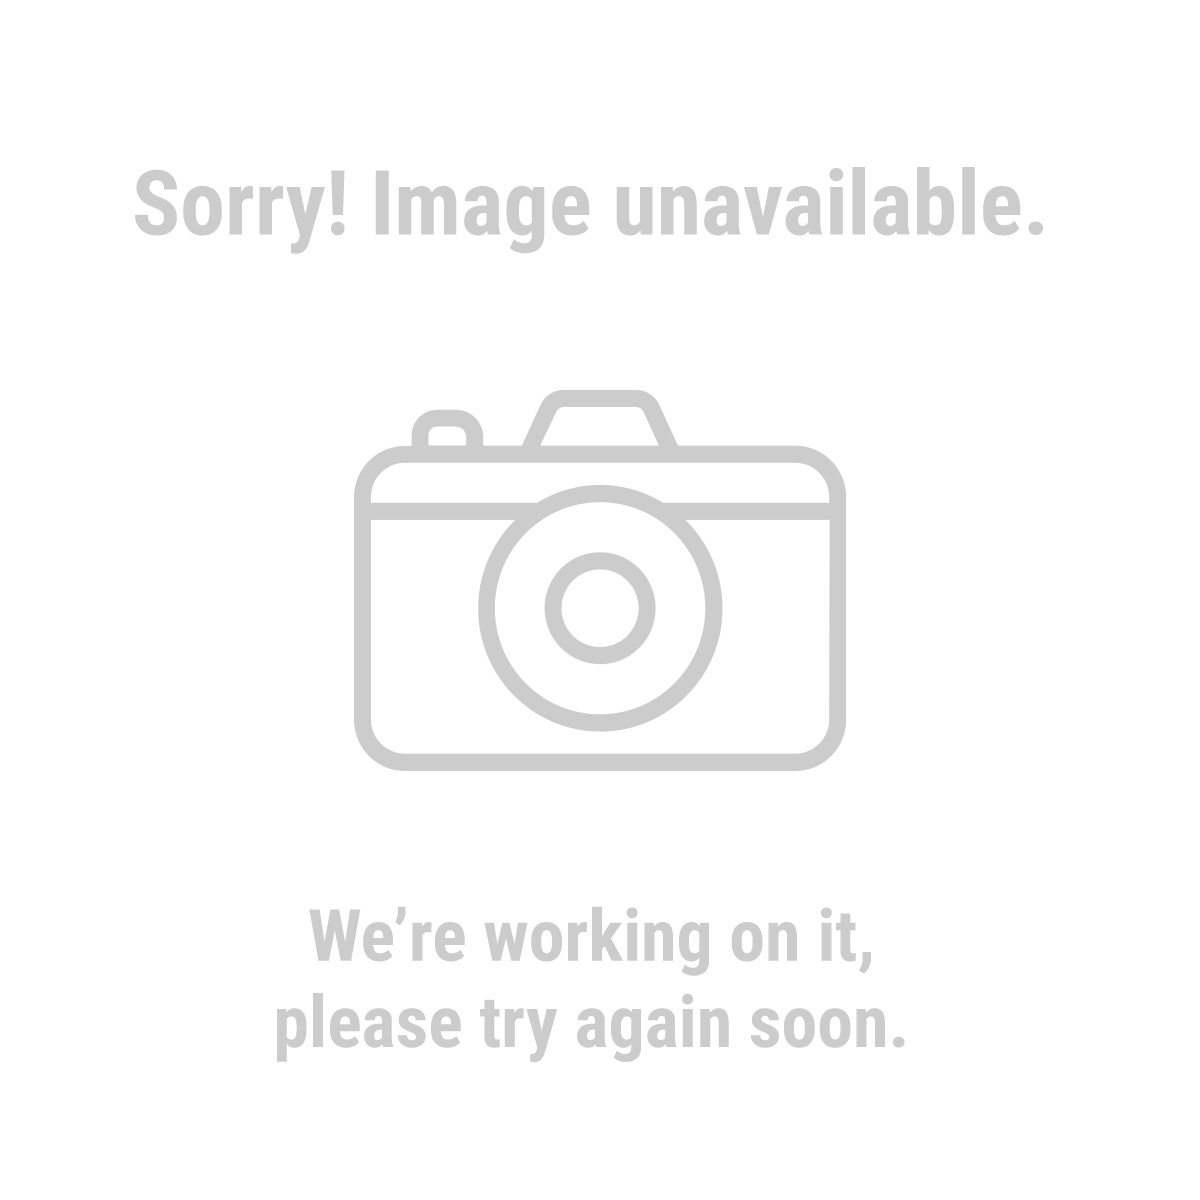 Harbor Freight Plunge Router Review